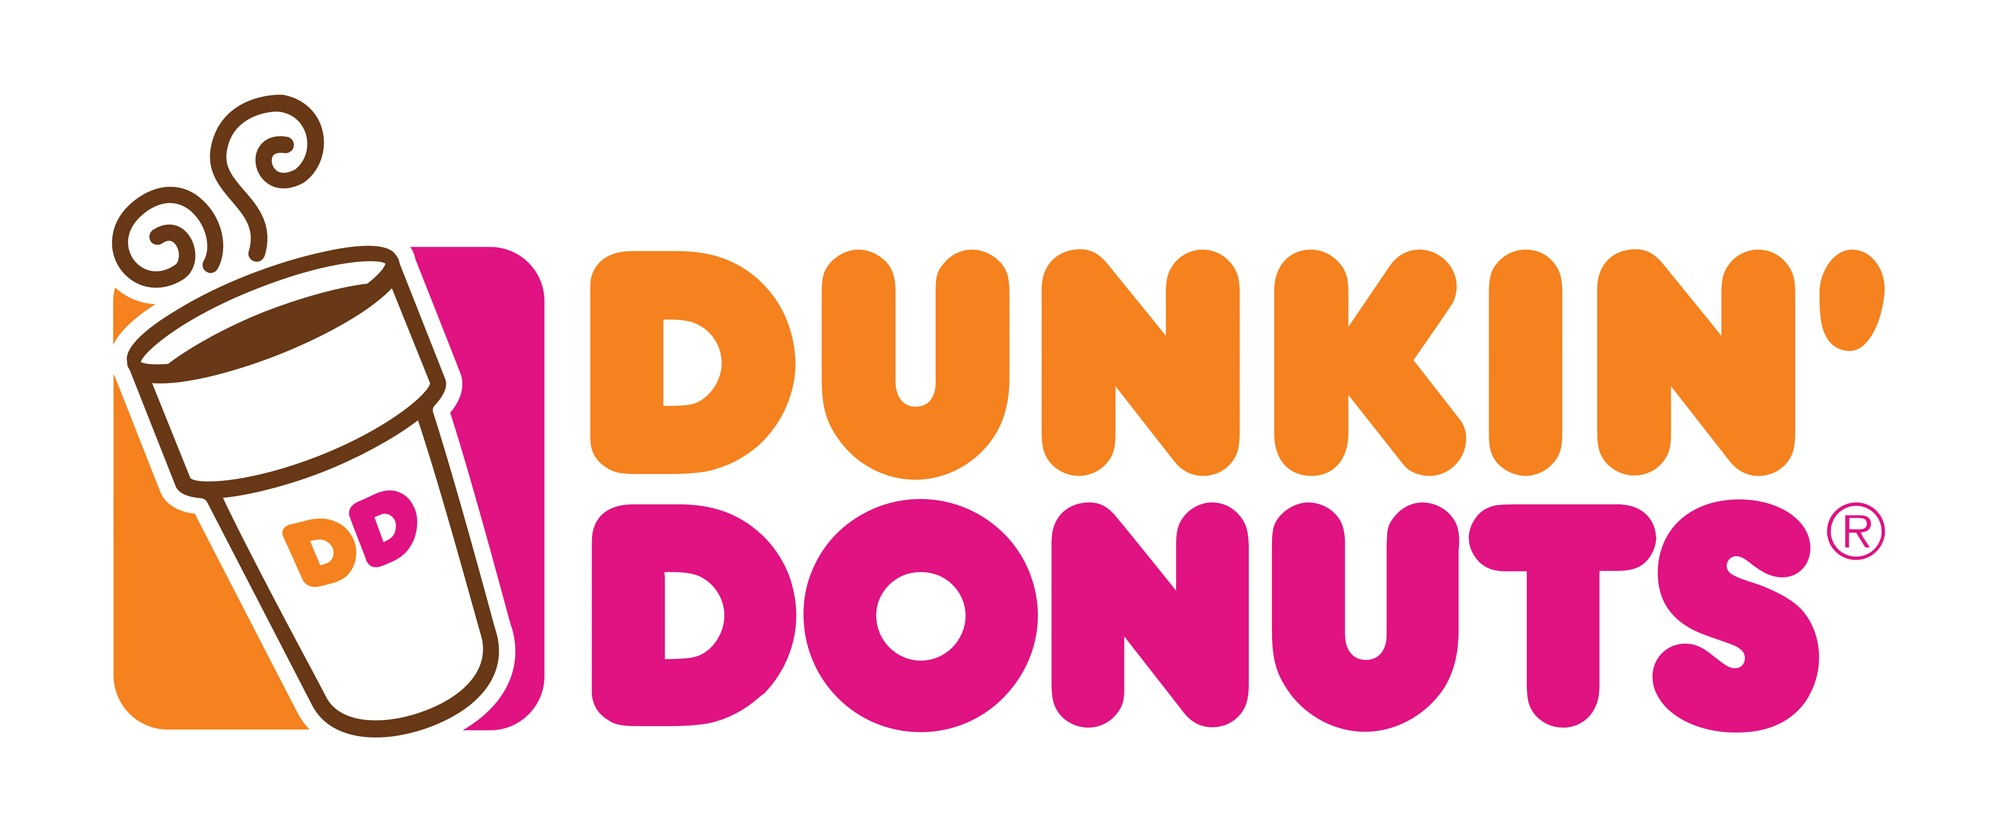 Dunkin' Donuts 12% off $100 Ecard Gift Card Image